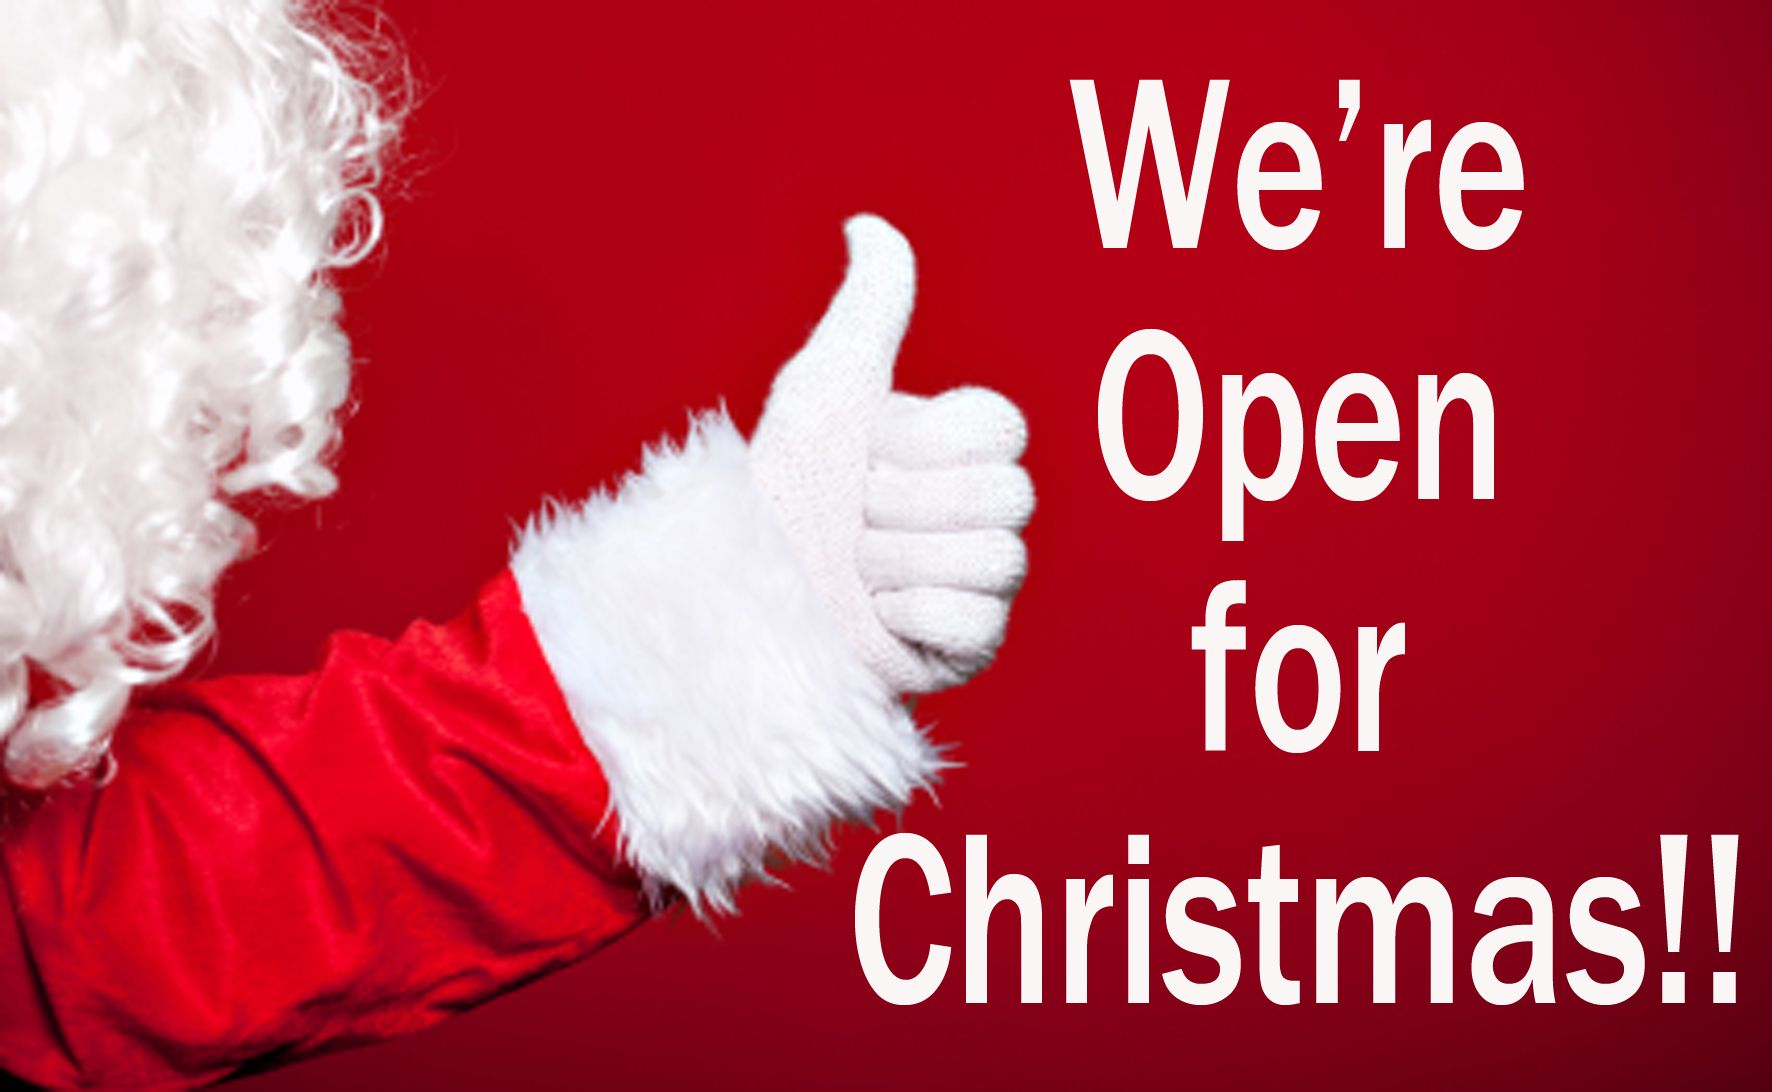 Food Open Christmas Eve.Restaurants Open On Xmas Day Xmas Ideas 2019 Decorative